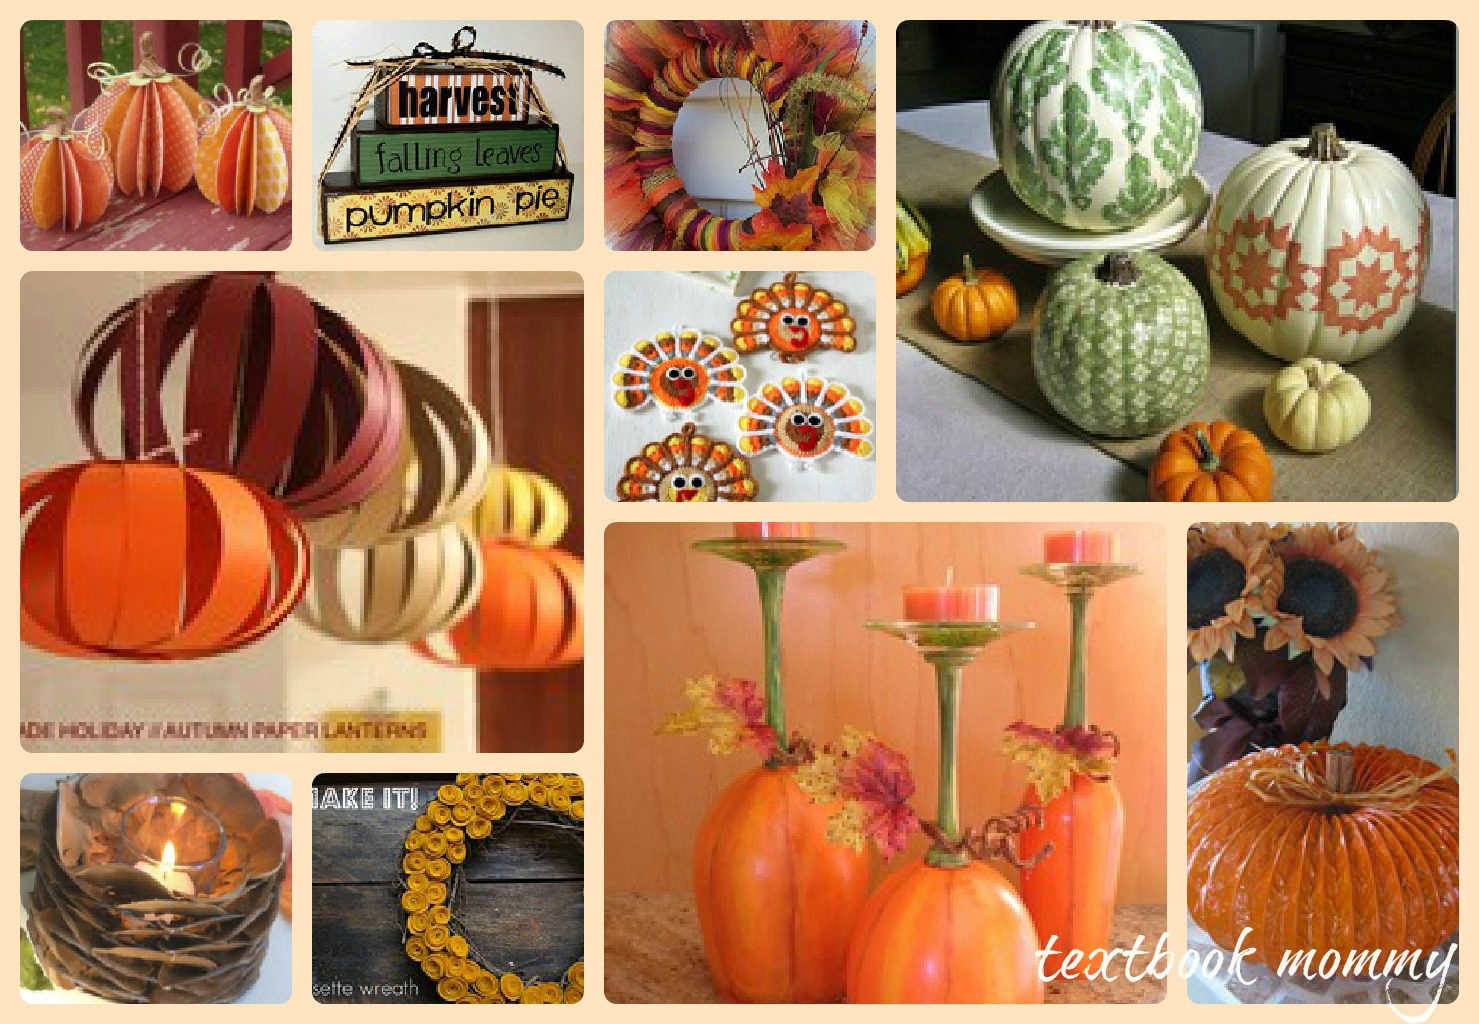 textbook mommy 10 fantastic thanksgiving home decor crafts